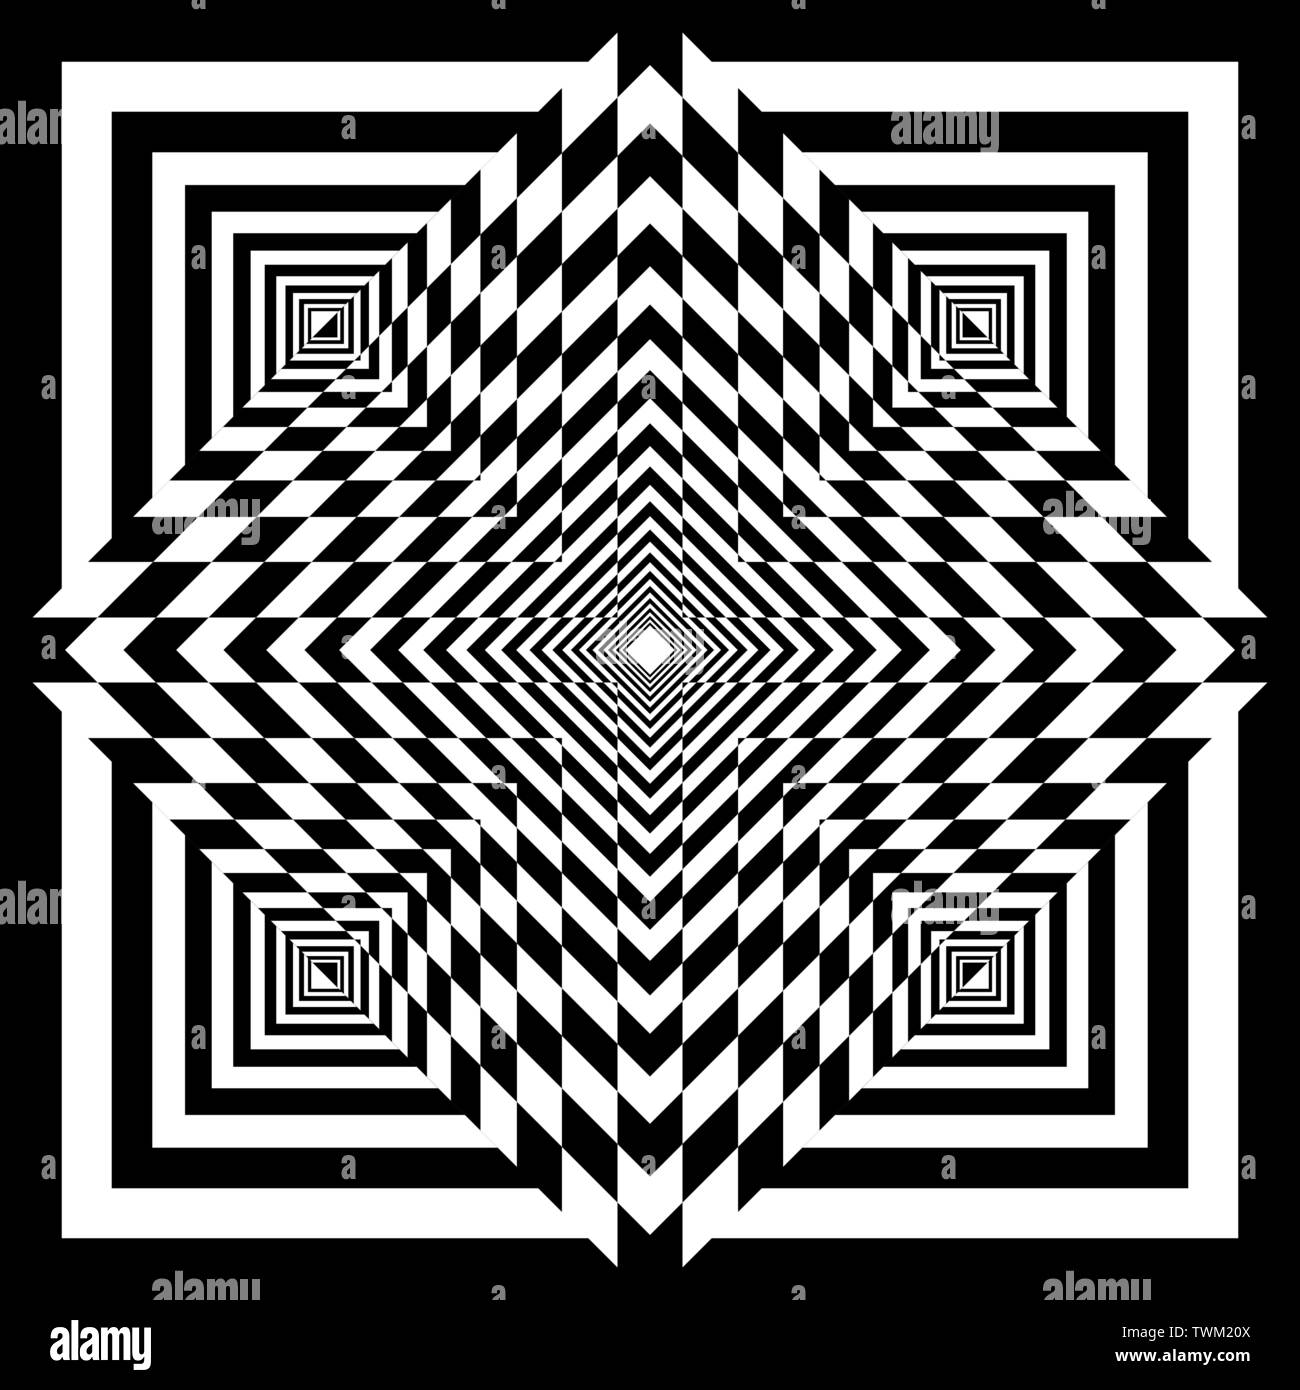 cross tridimensional perspective intersections chessboard ...